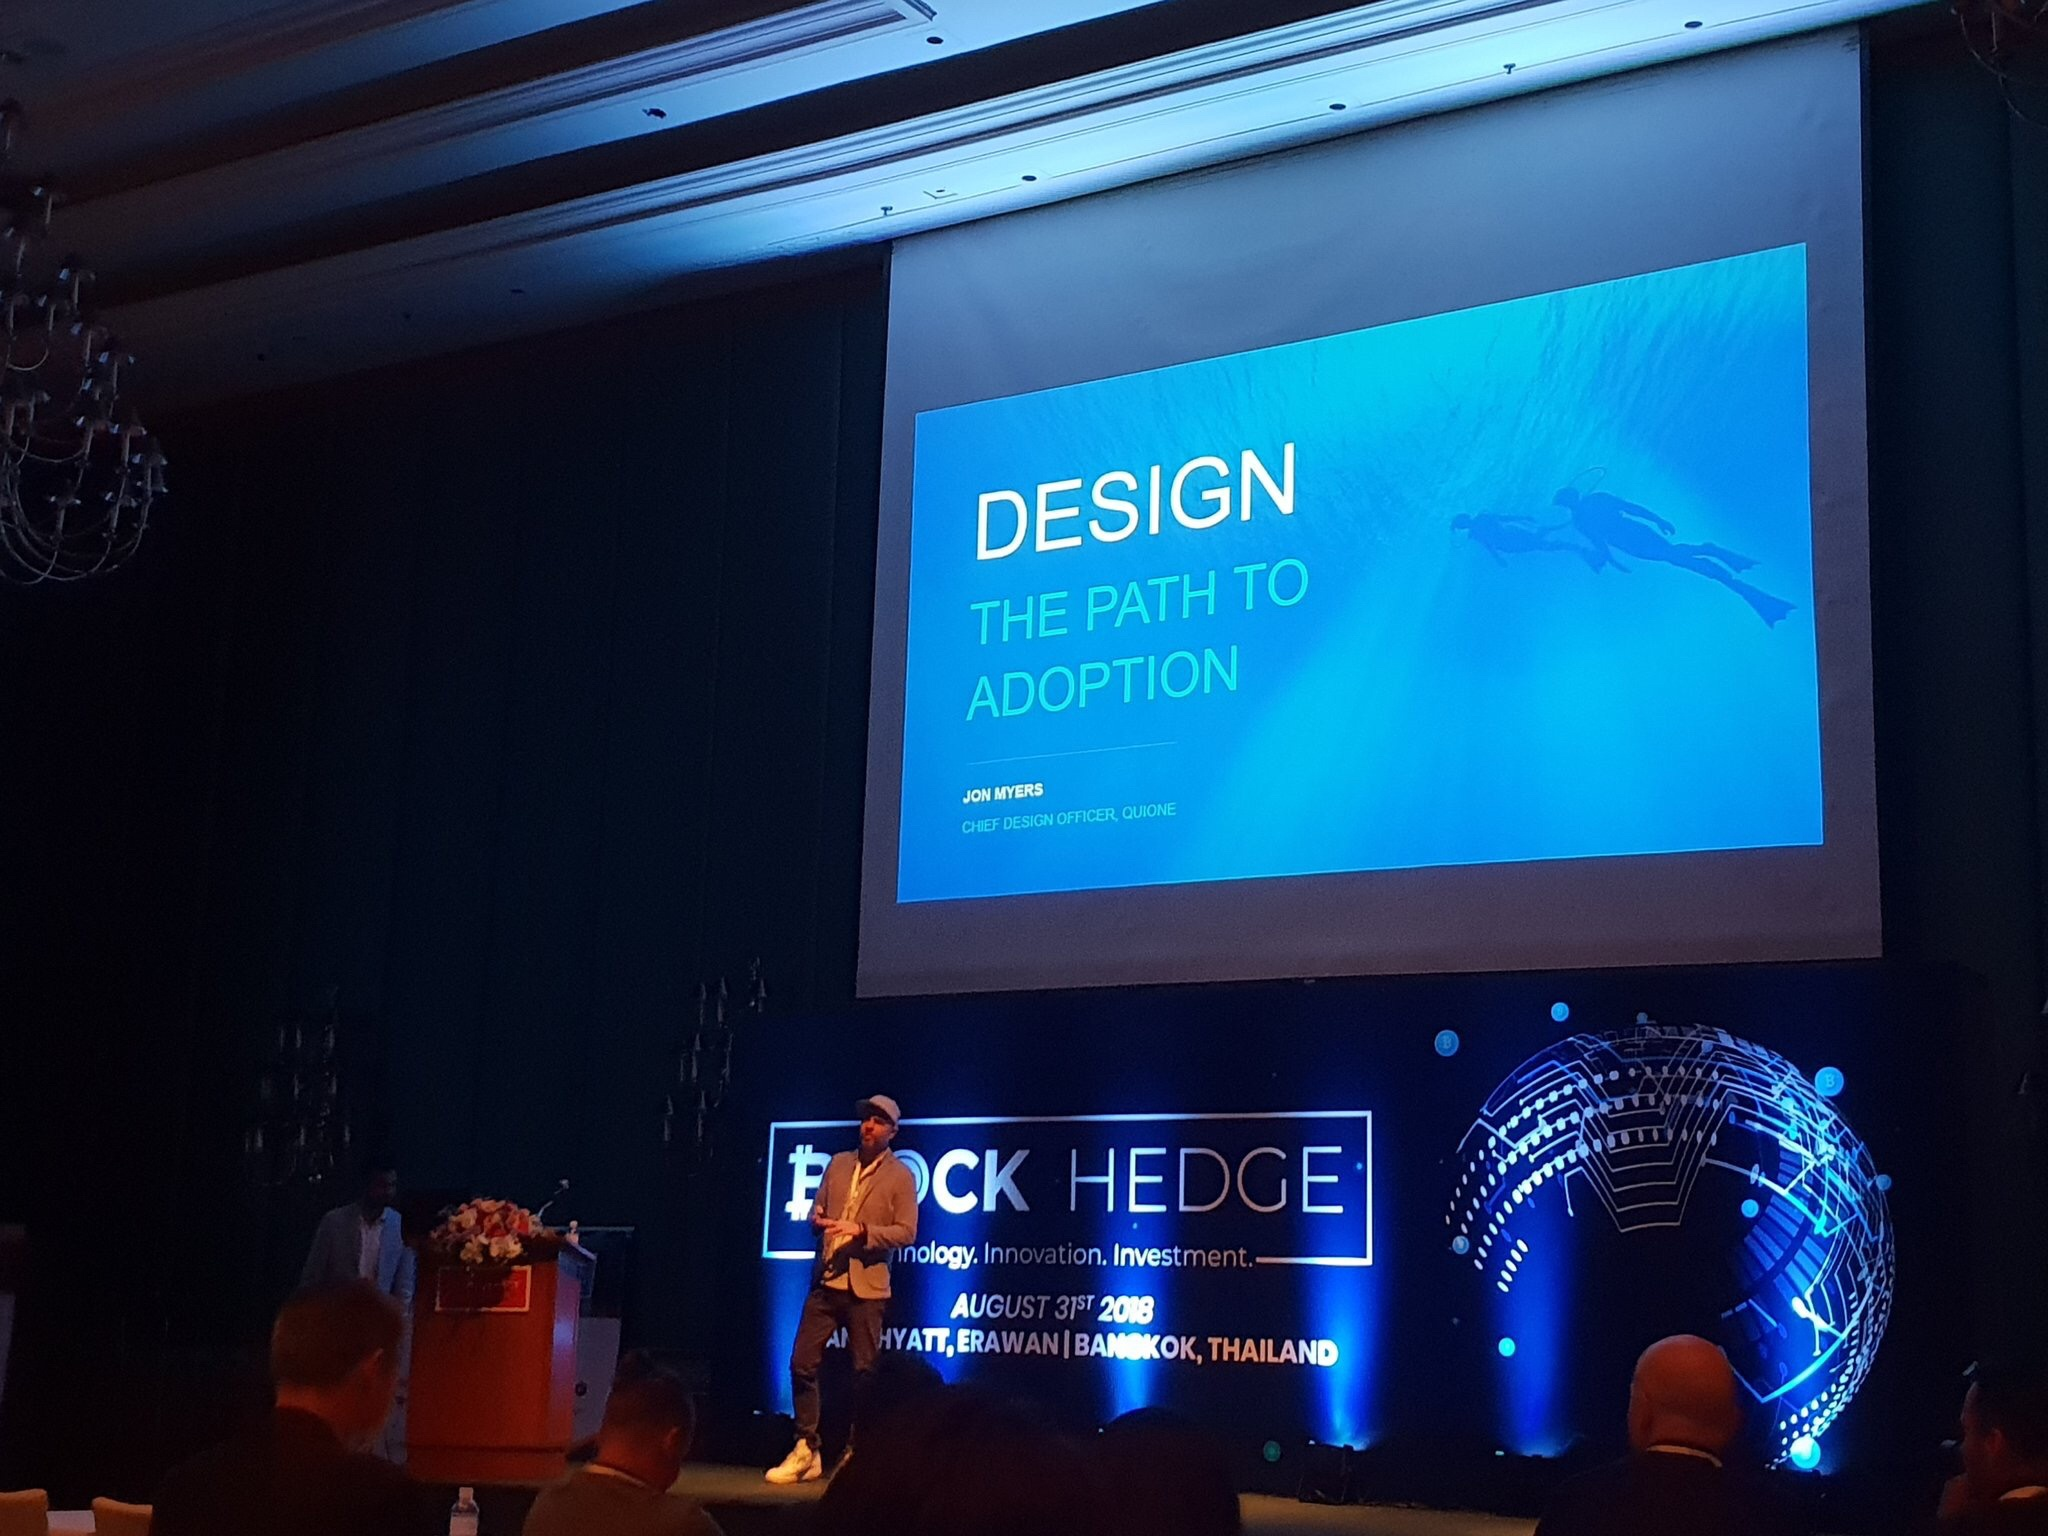 Liquid Chief Design Office Jon Myers at Block Hedge crypto conference